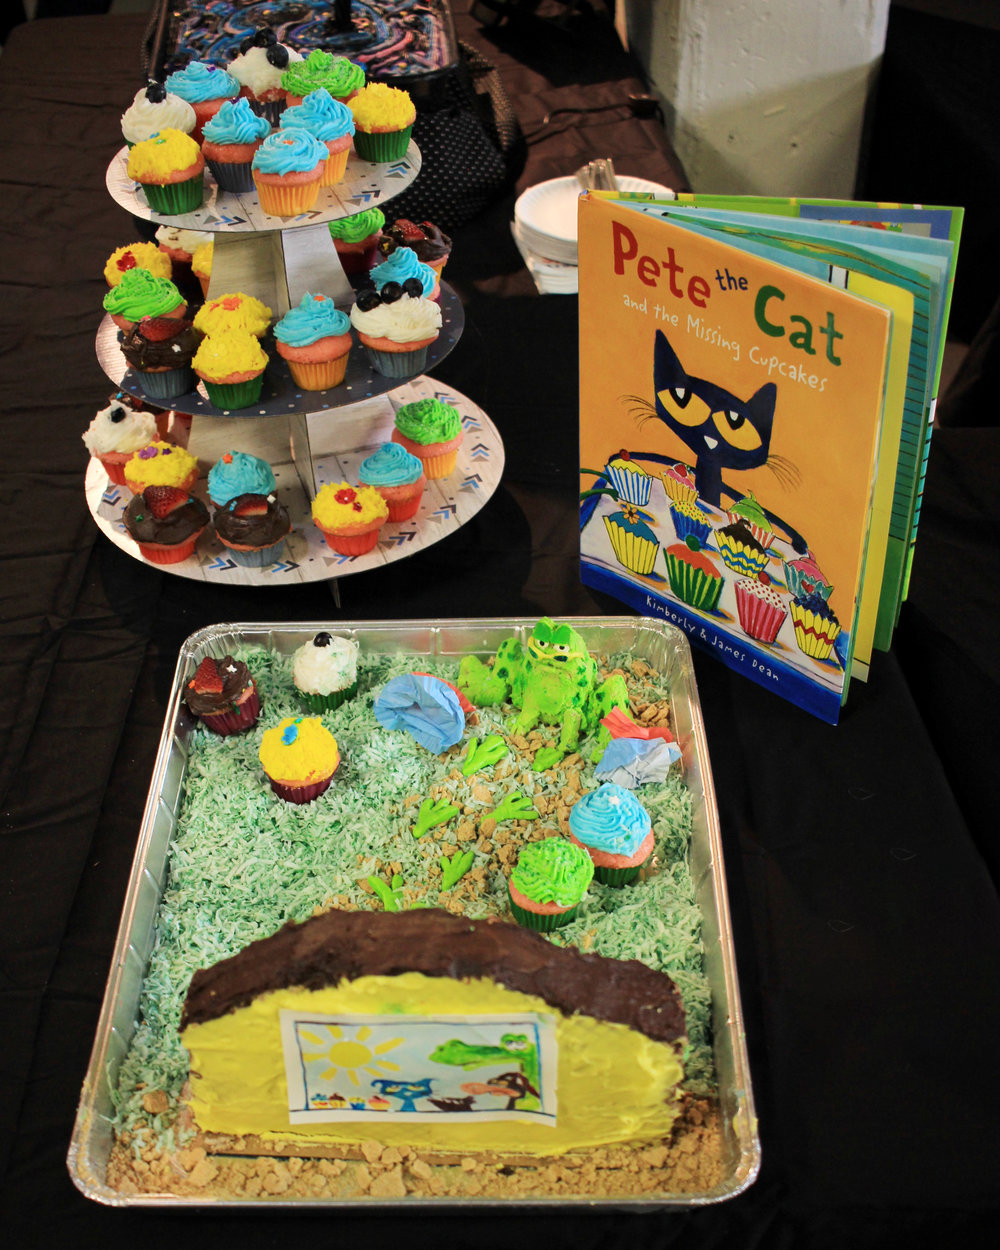 """""""Pete the Cat and the Missing Cupcakes"""" by Emily Basse"""